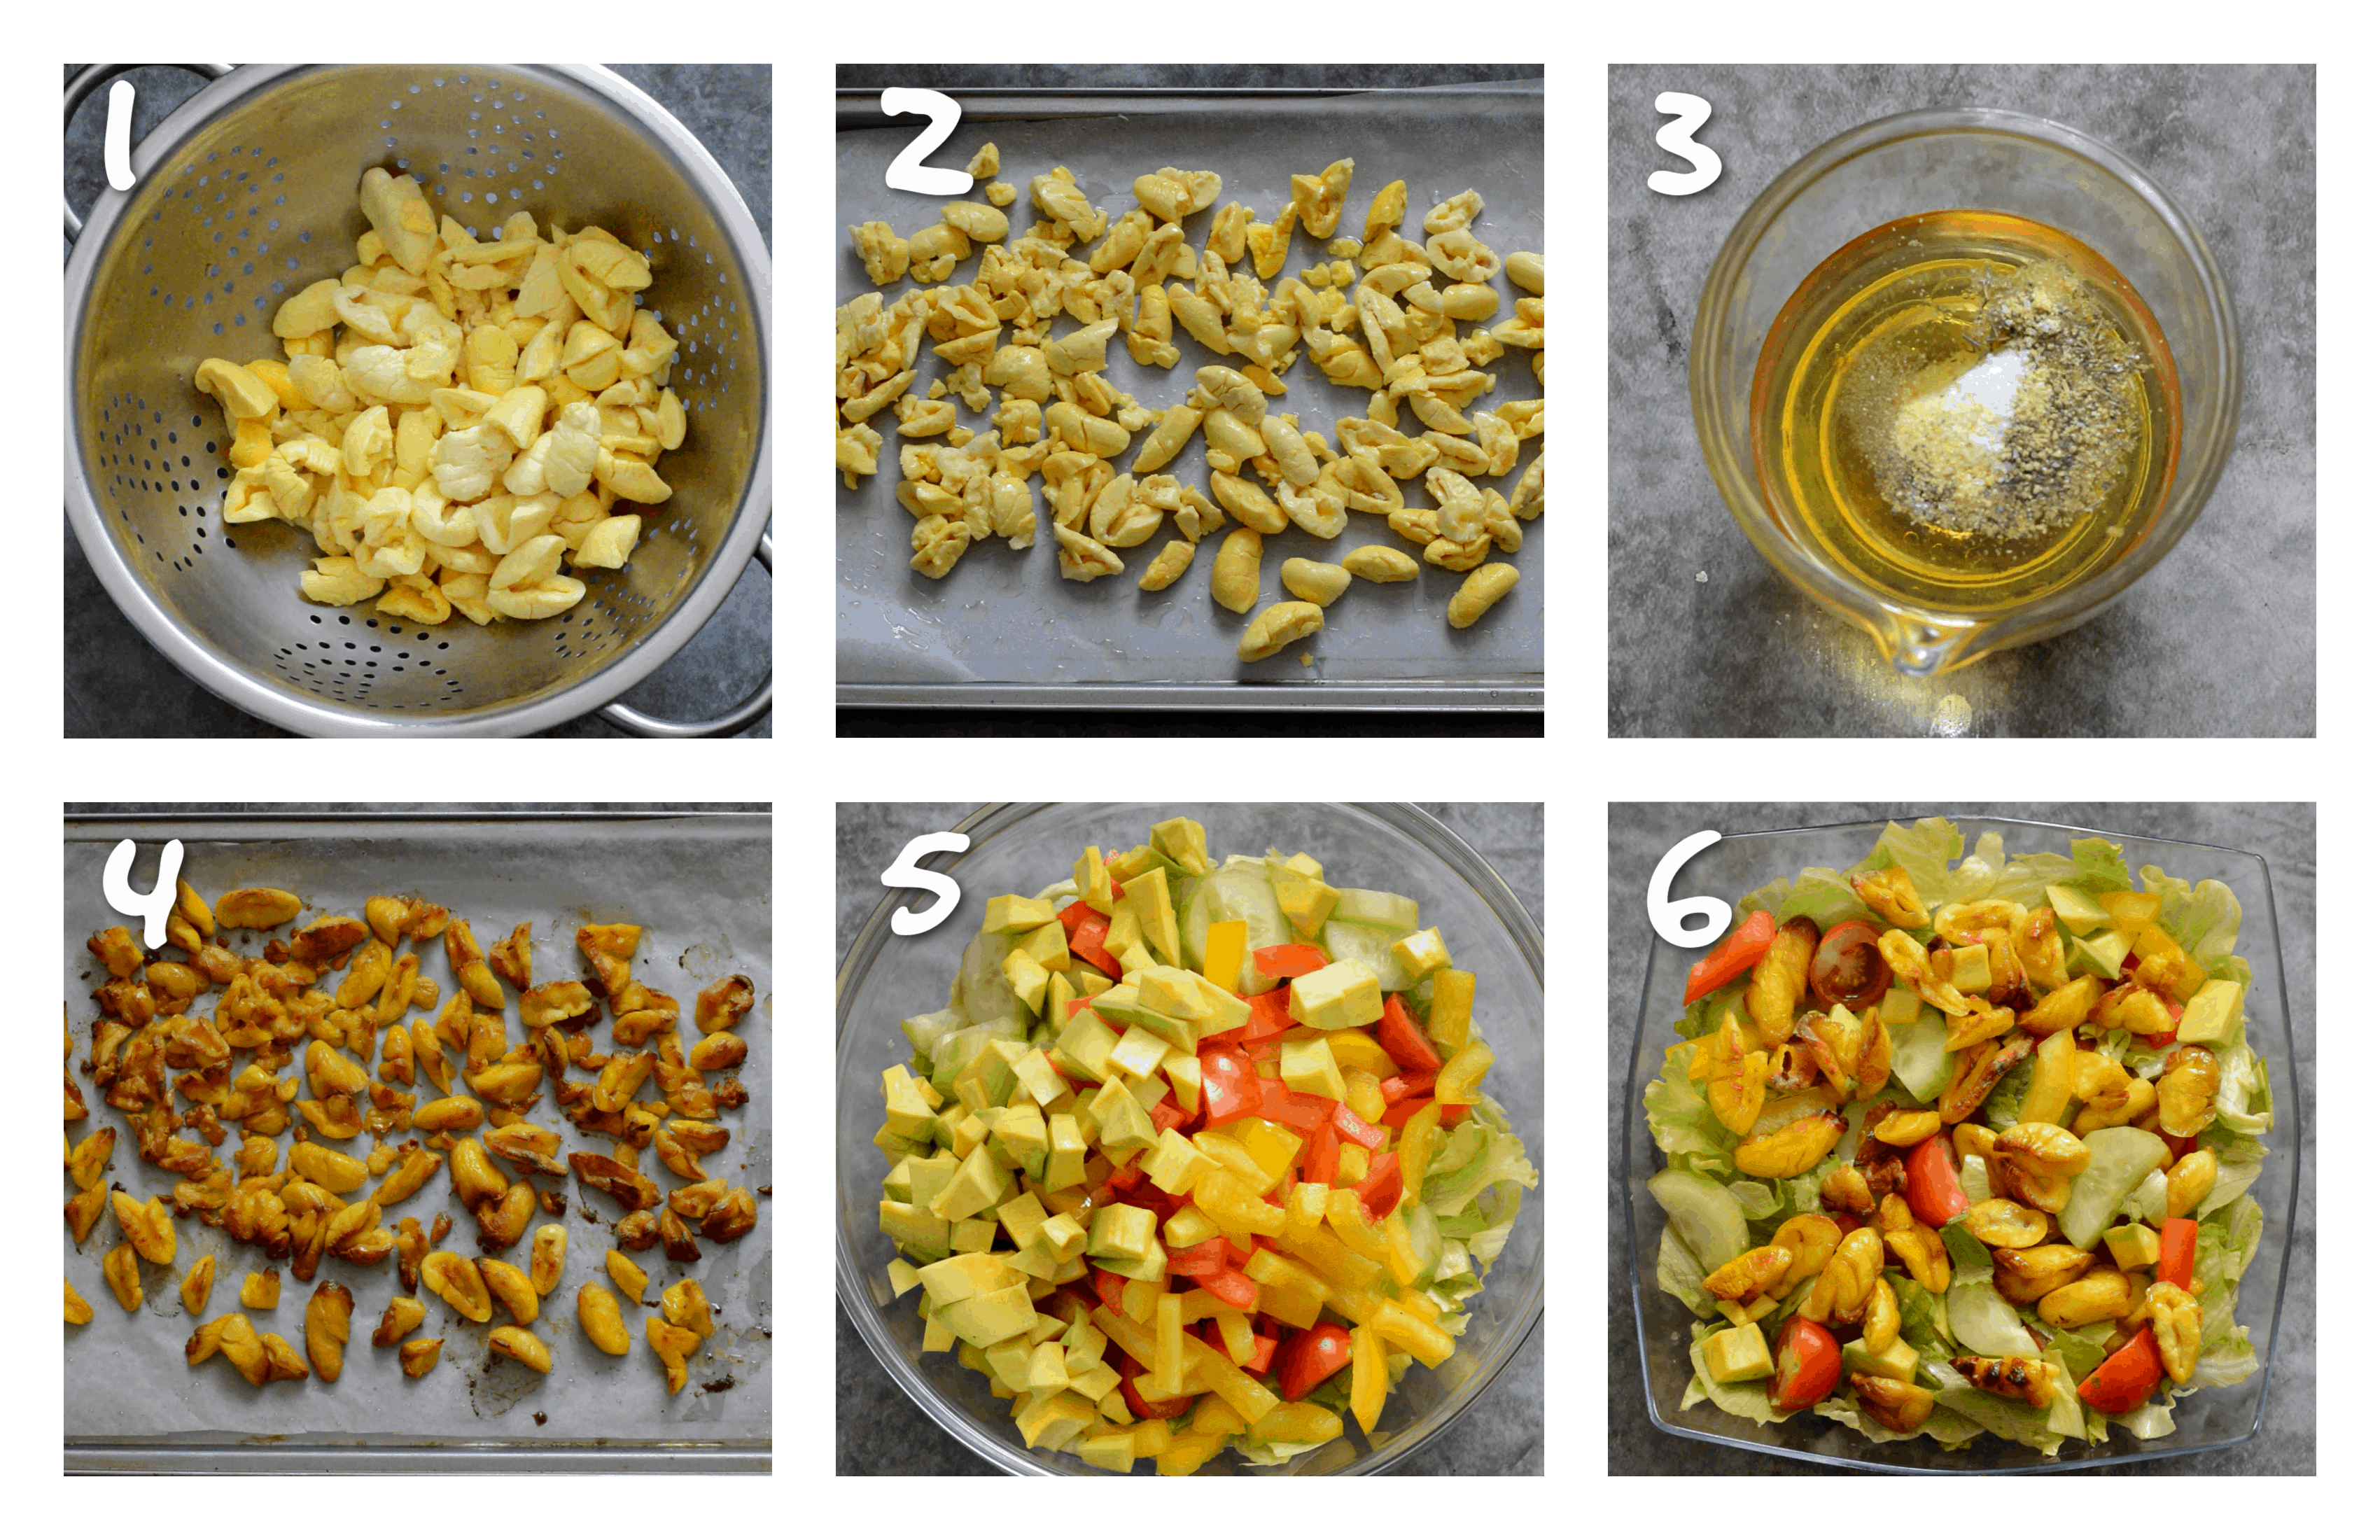 steps1-6 roasting the ackee and making the salad